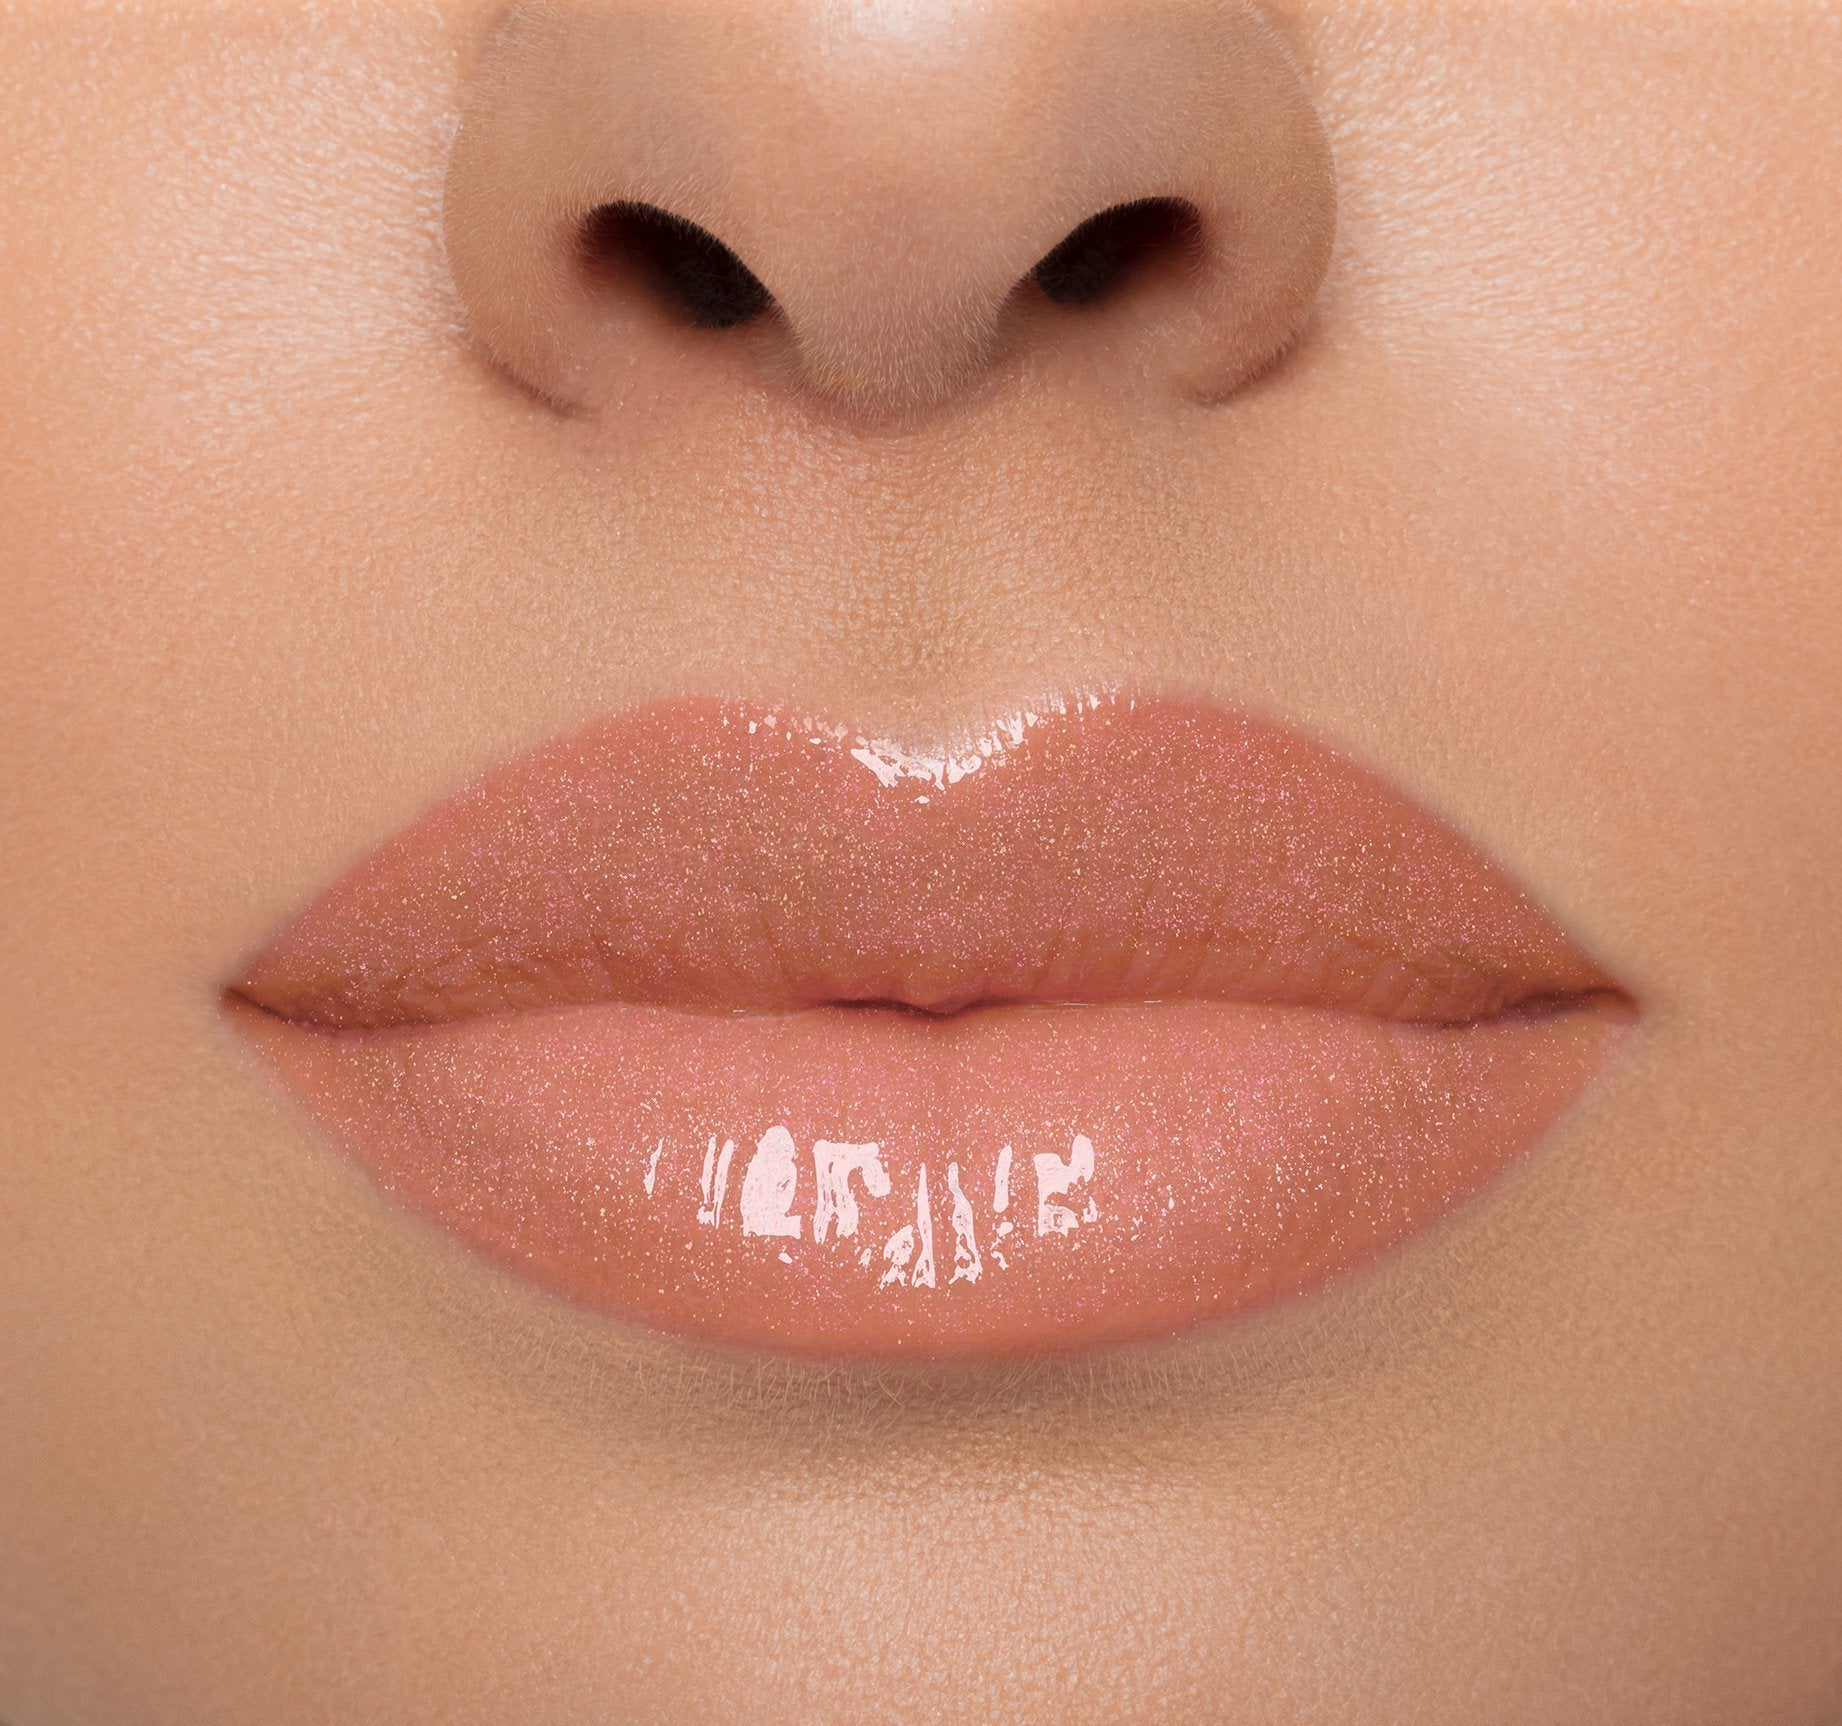 LIP GLOSS - SHIMMY ON LIGHT COMPLEXION MODEL, view larger image